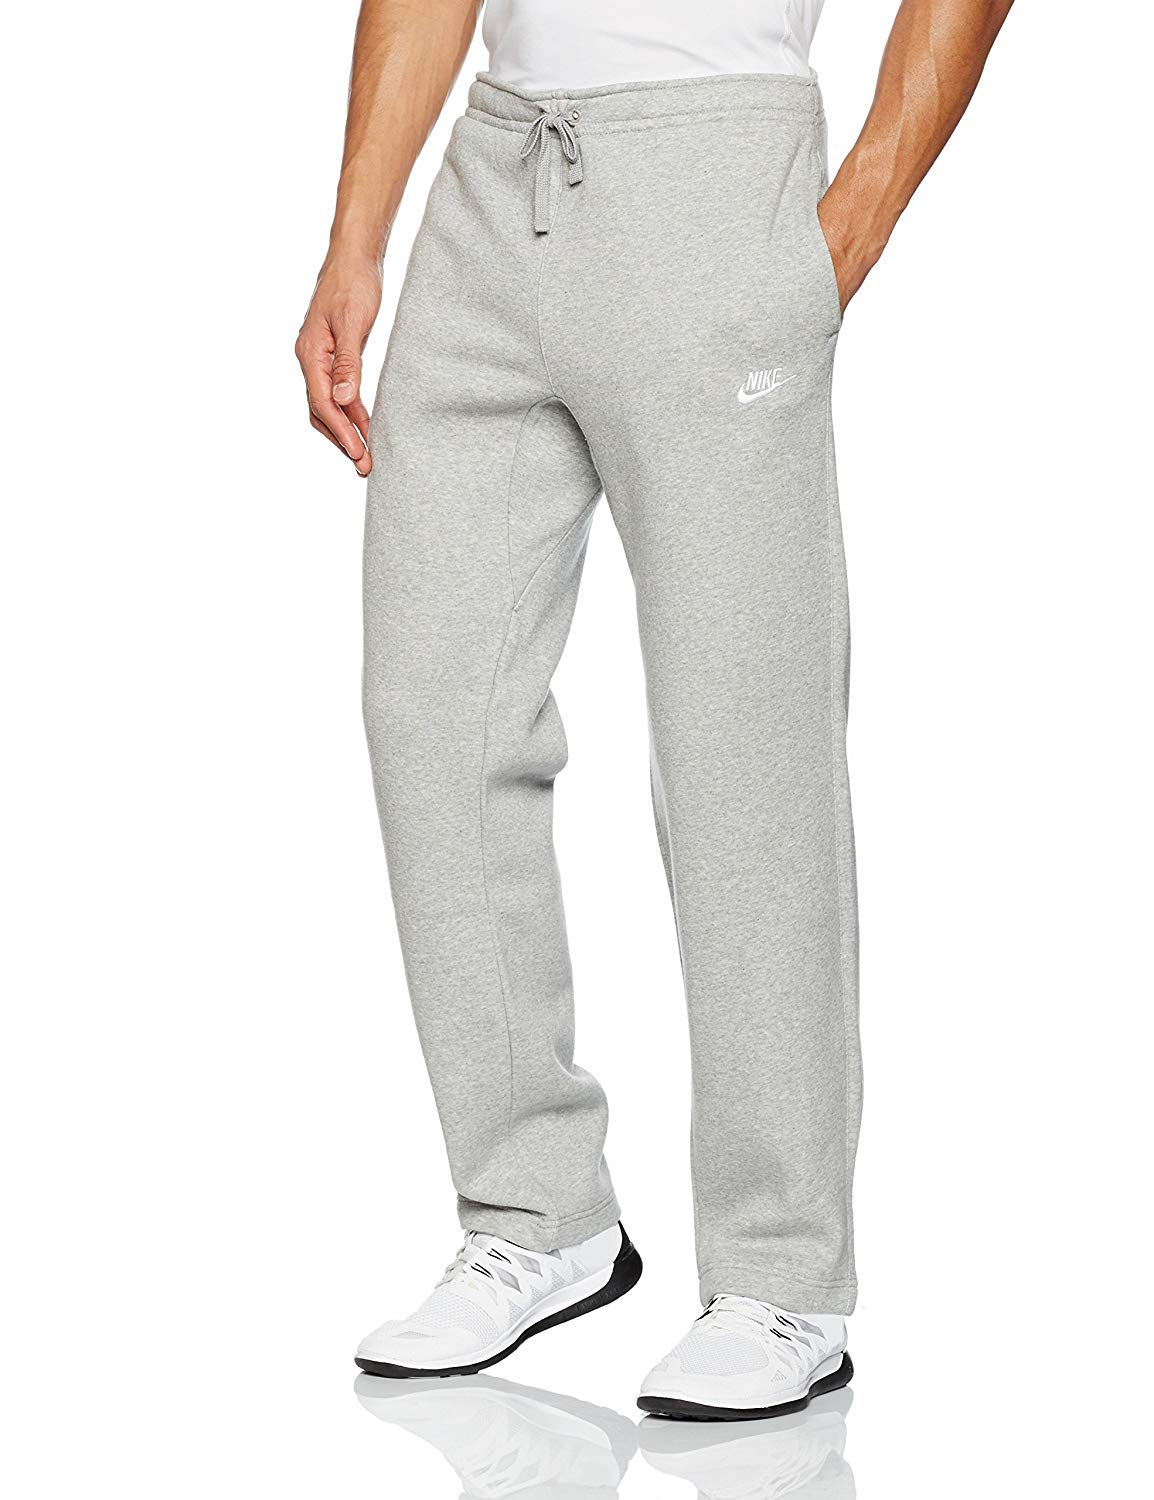 Nike Club Fleece Open Hem Men's Sweatpants (Dark Grey Heather/White, M)